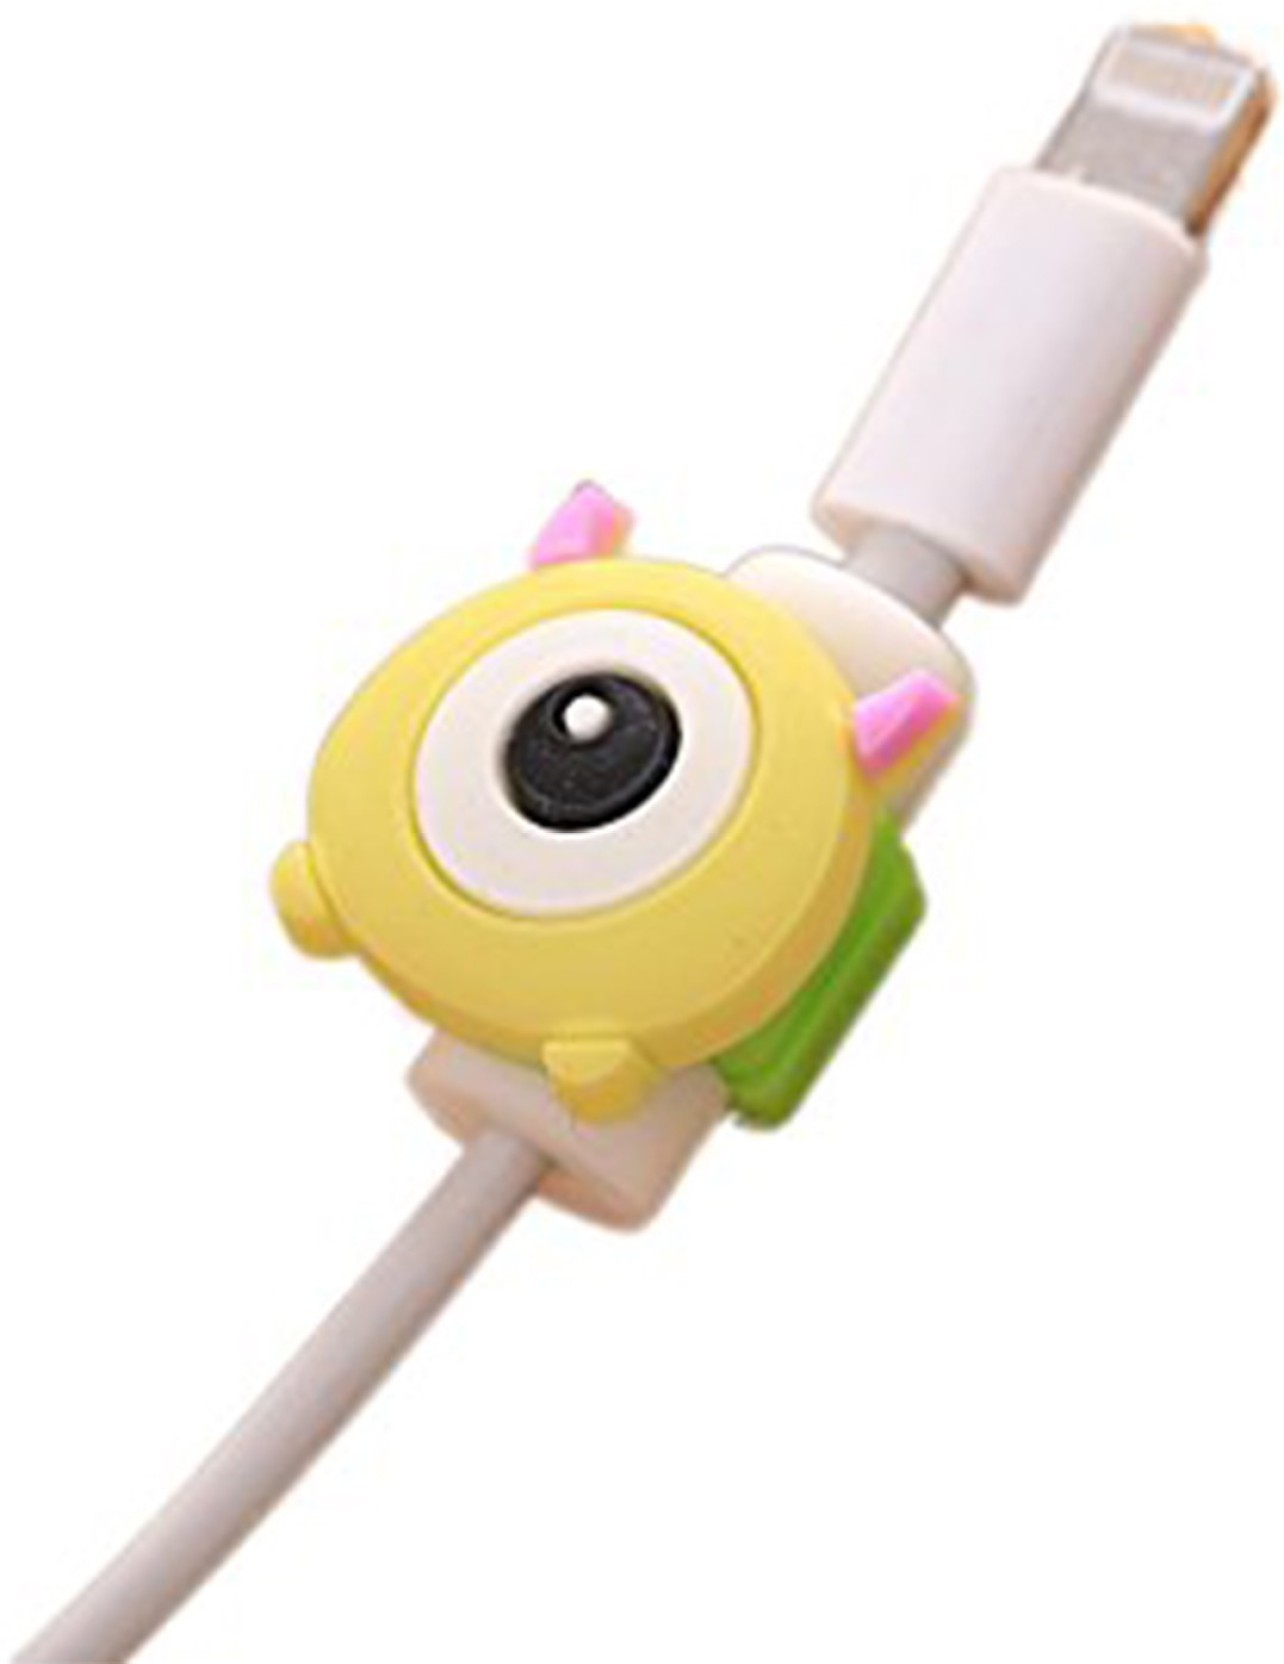 Lovely Cartoon Charger Cable Winder Protective Case Saver 8 Pin Data Line Protector Earphone Cord Protection Sleeve Wire Cover Digital Cables